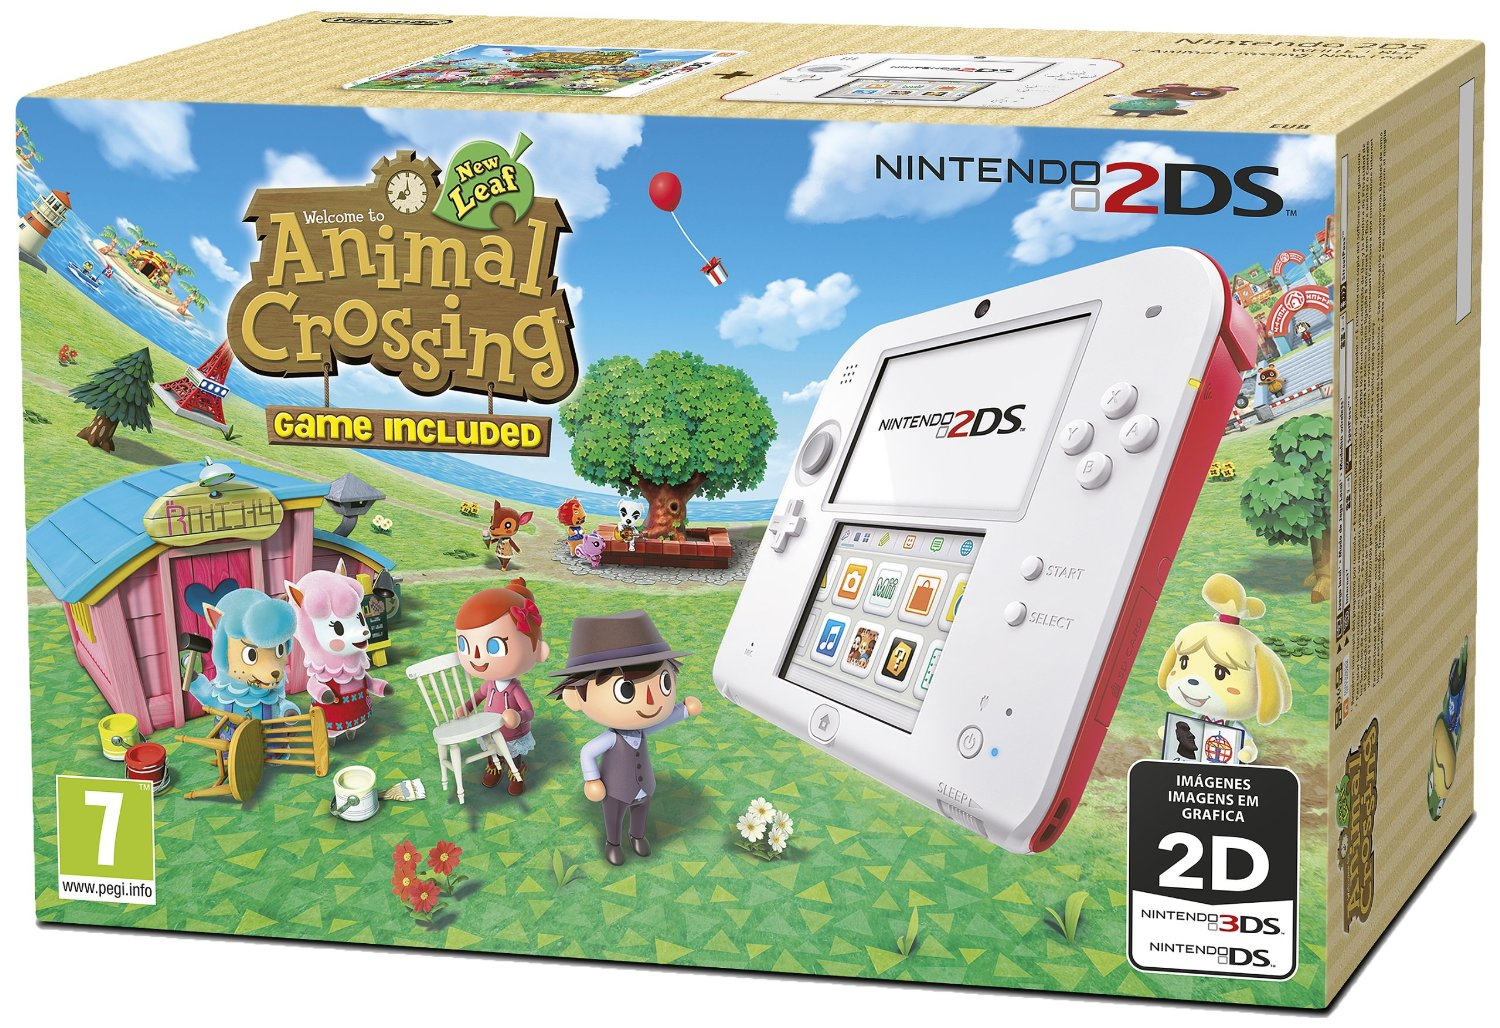 Llega el pack especial de Animal Crossing: New Leaf a la 2DS